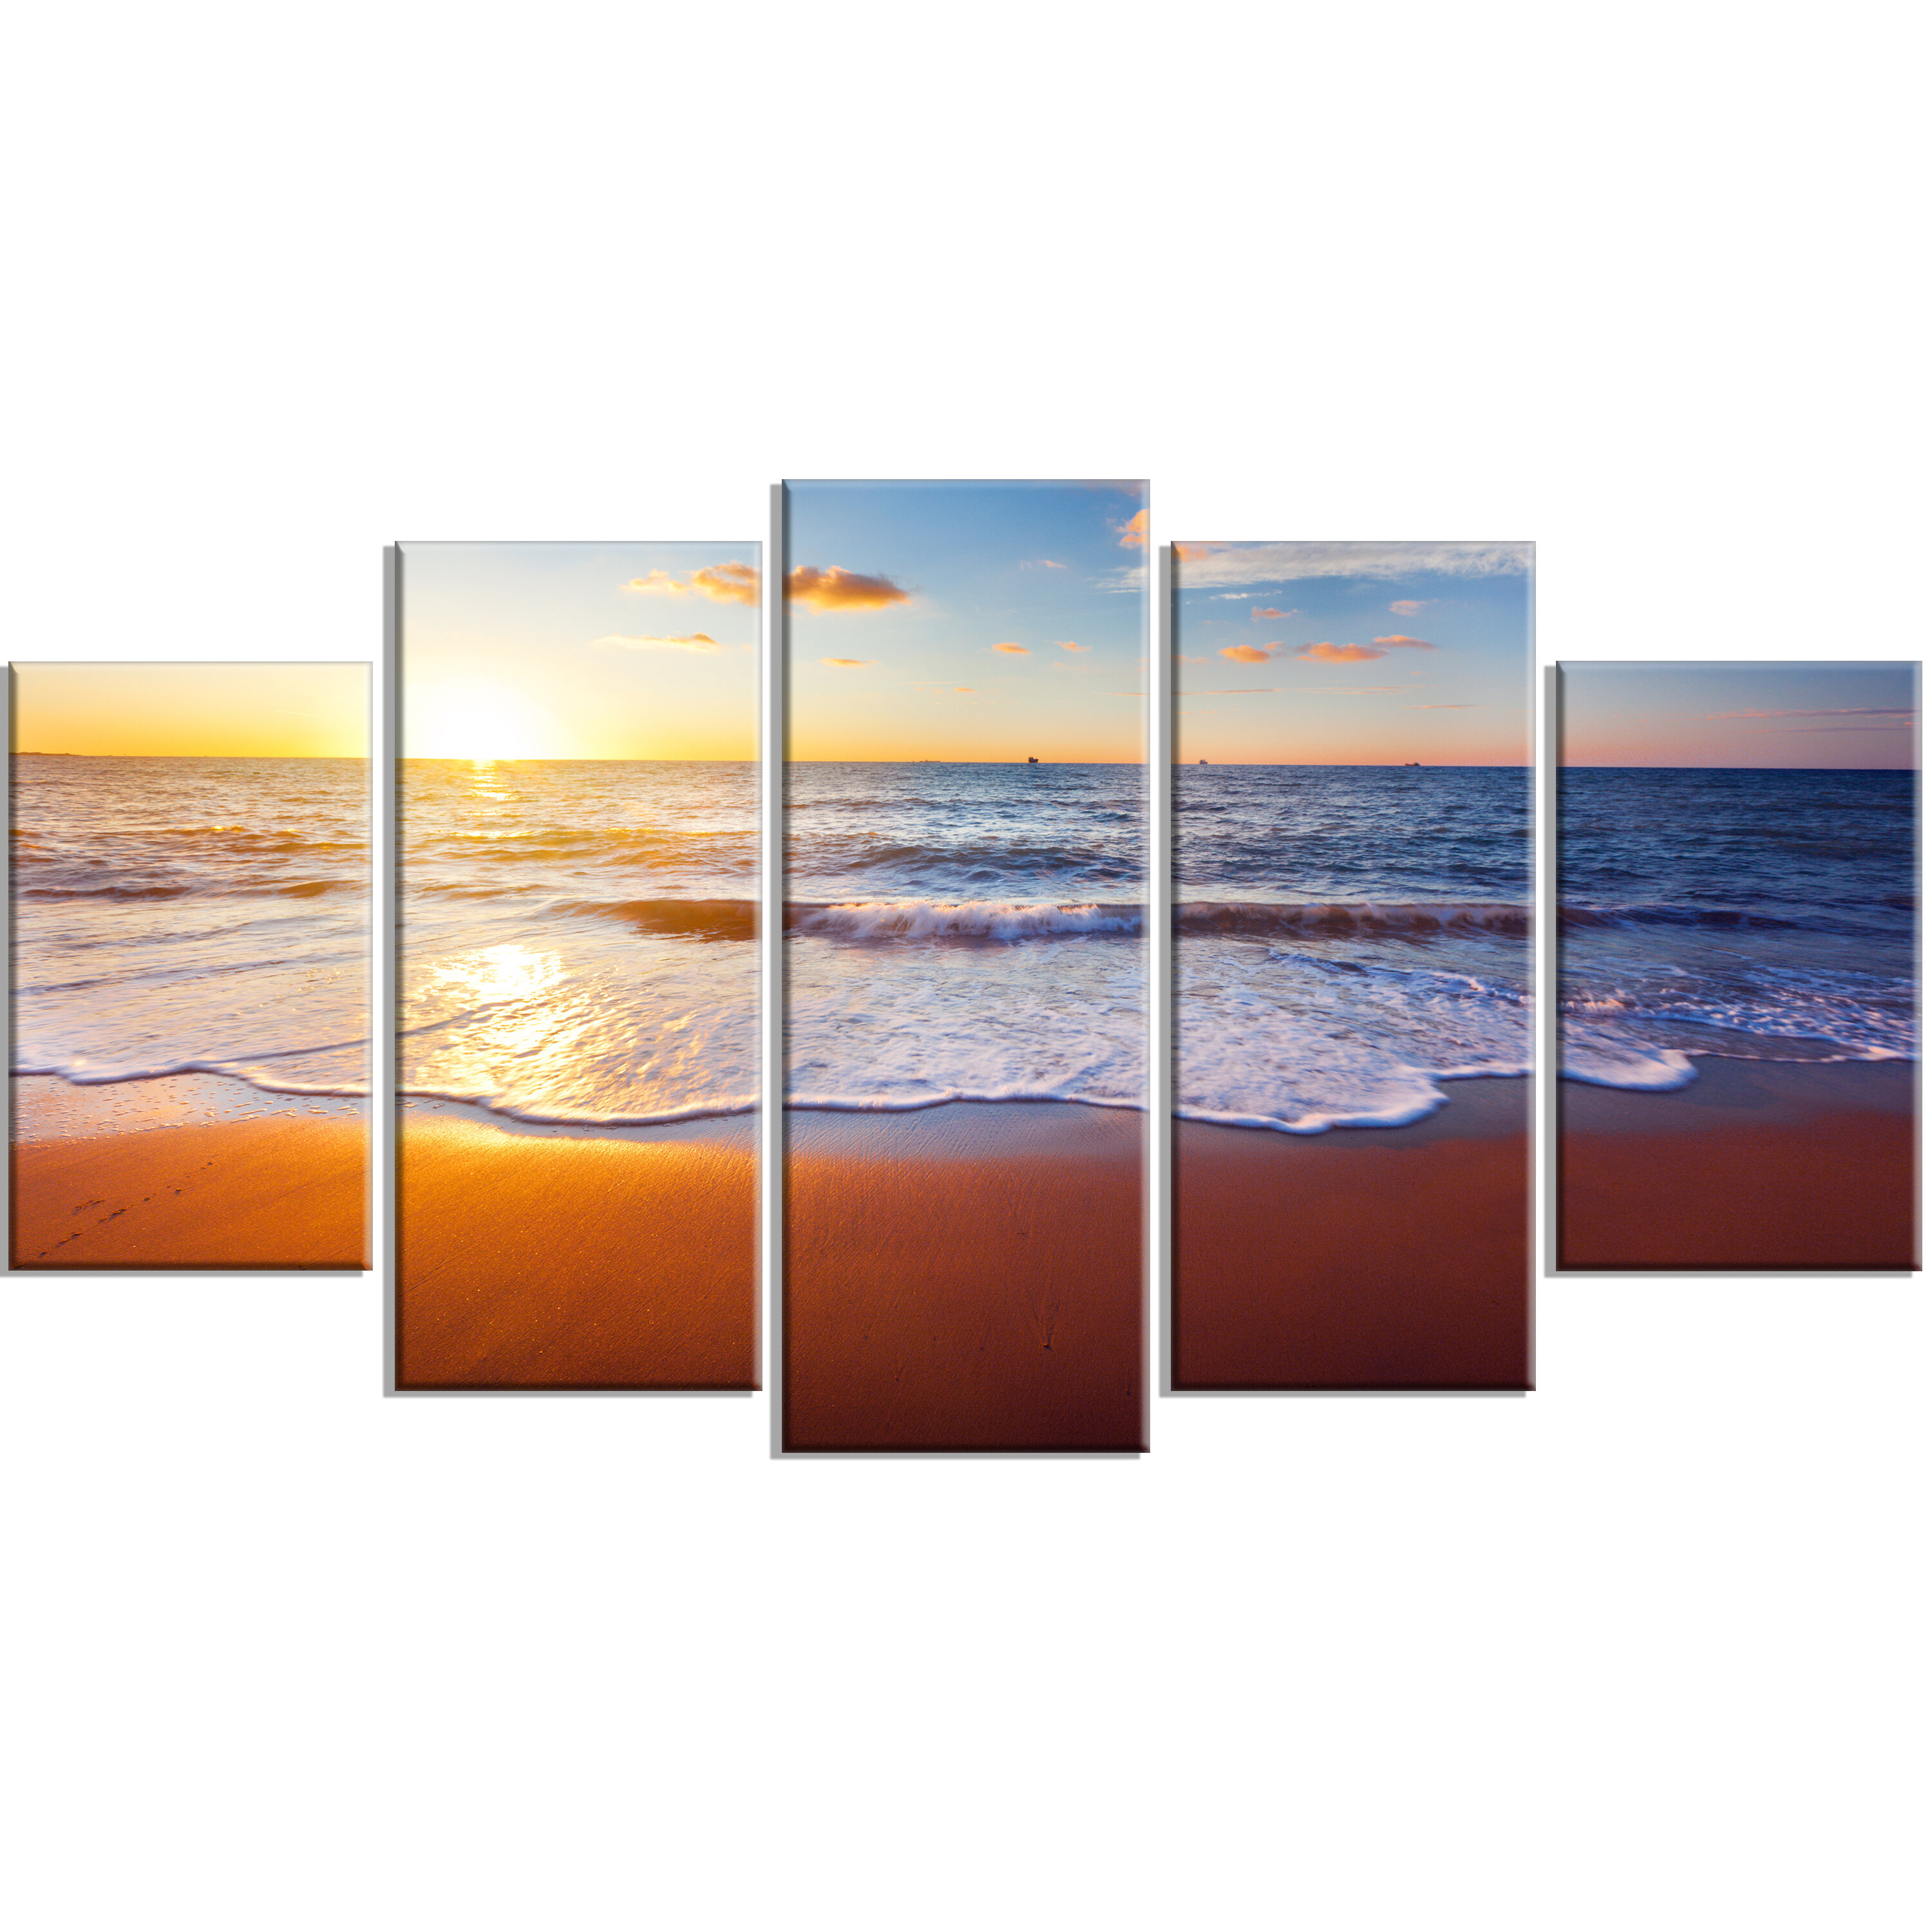 Highland Dunes Stunning Blue Waves And Brown Sand 5 Piece Wall Art On Wrapped Canvas Set Wayfair